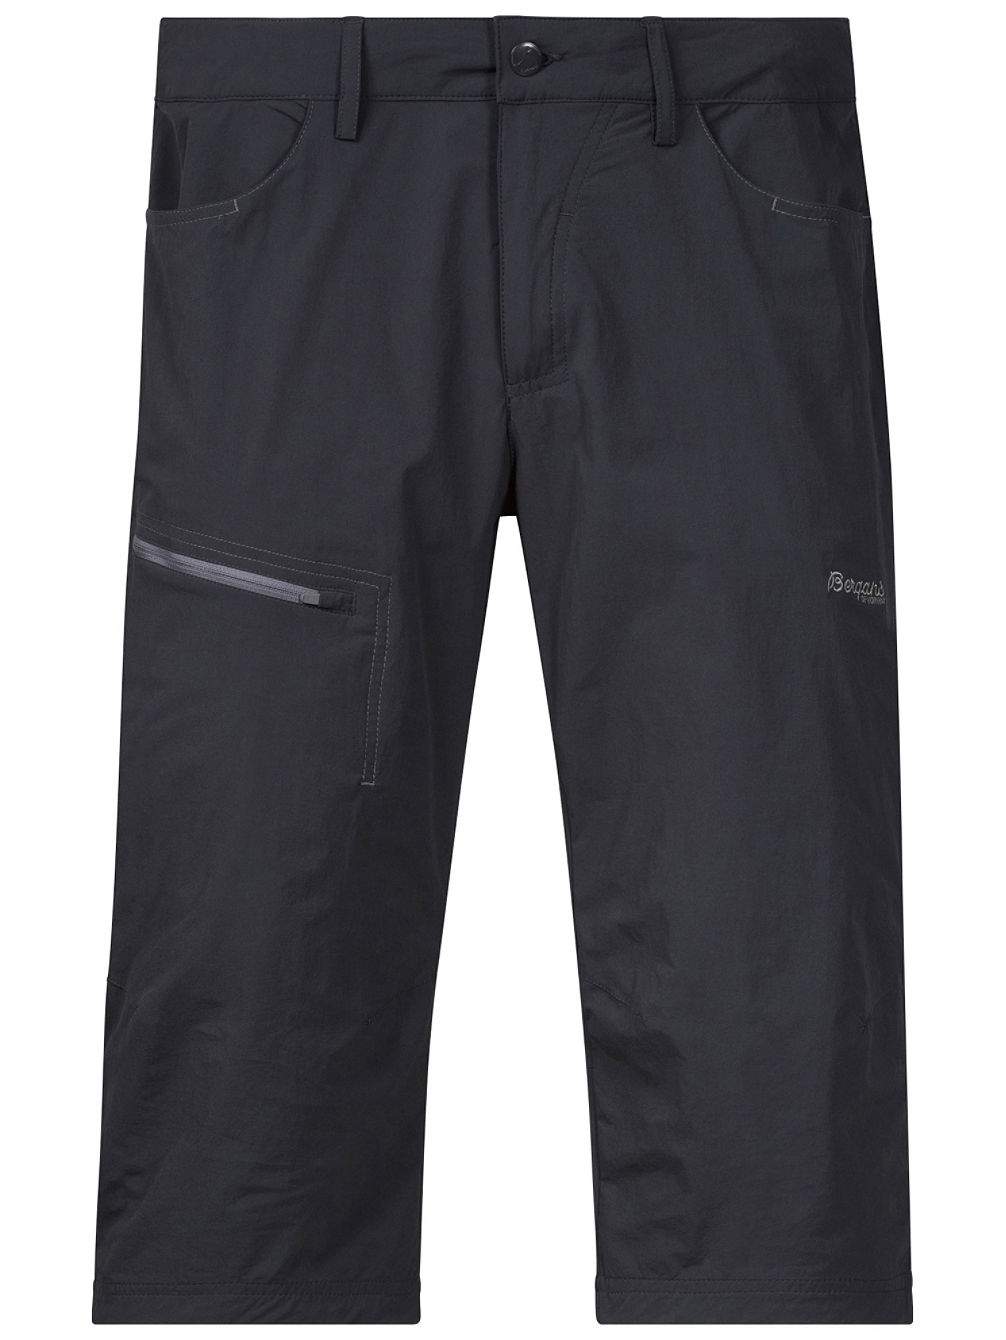 Moa Pirate Outdoor Pants